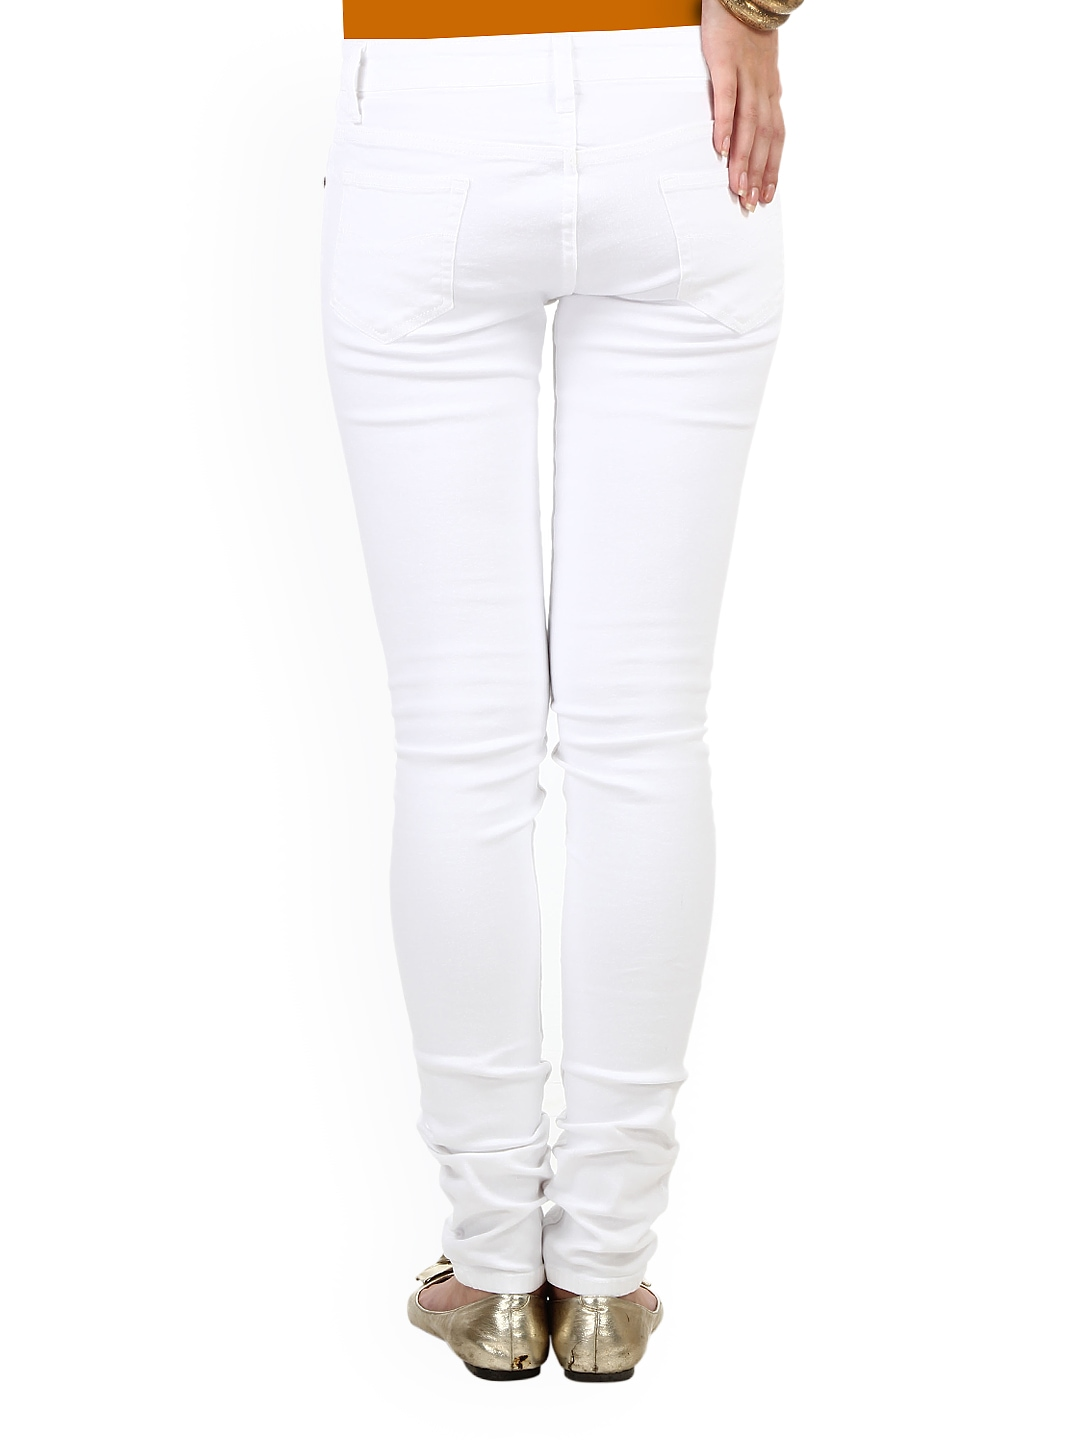 8f6bae6efe3 Buy 20D Women White Slim Fit Jeans 1381805 for online in india on Myntra at  Yebhi.com